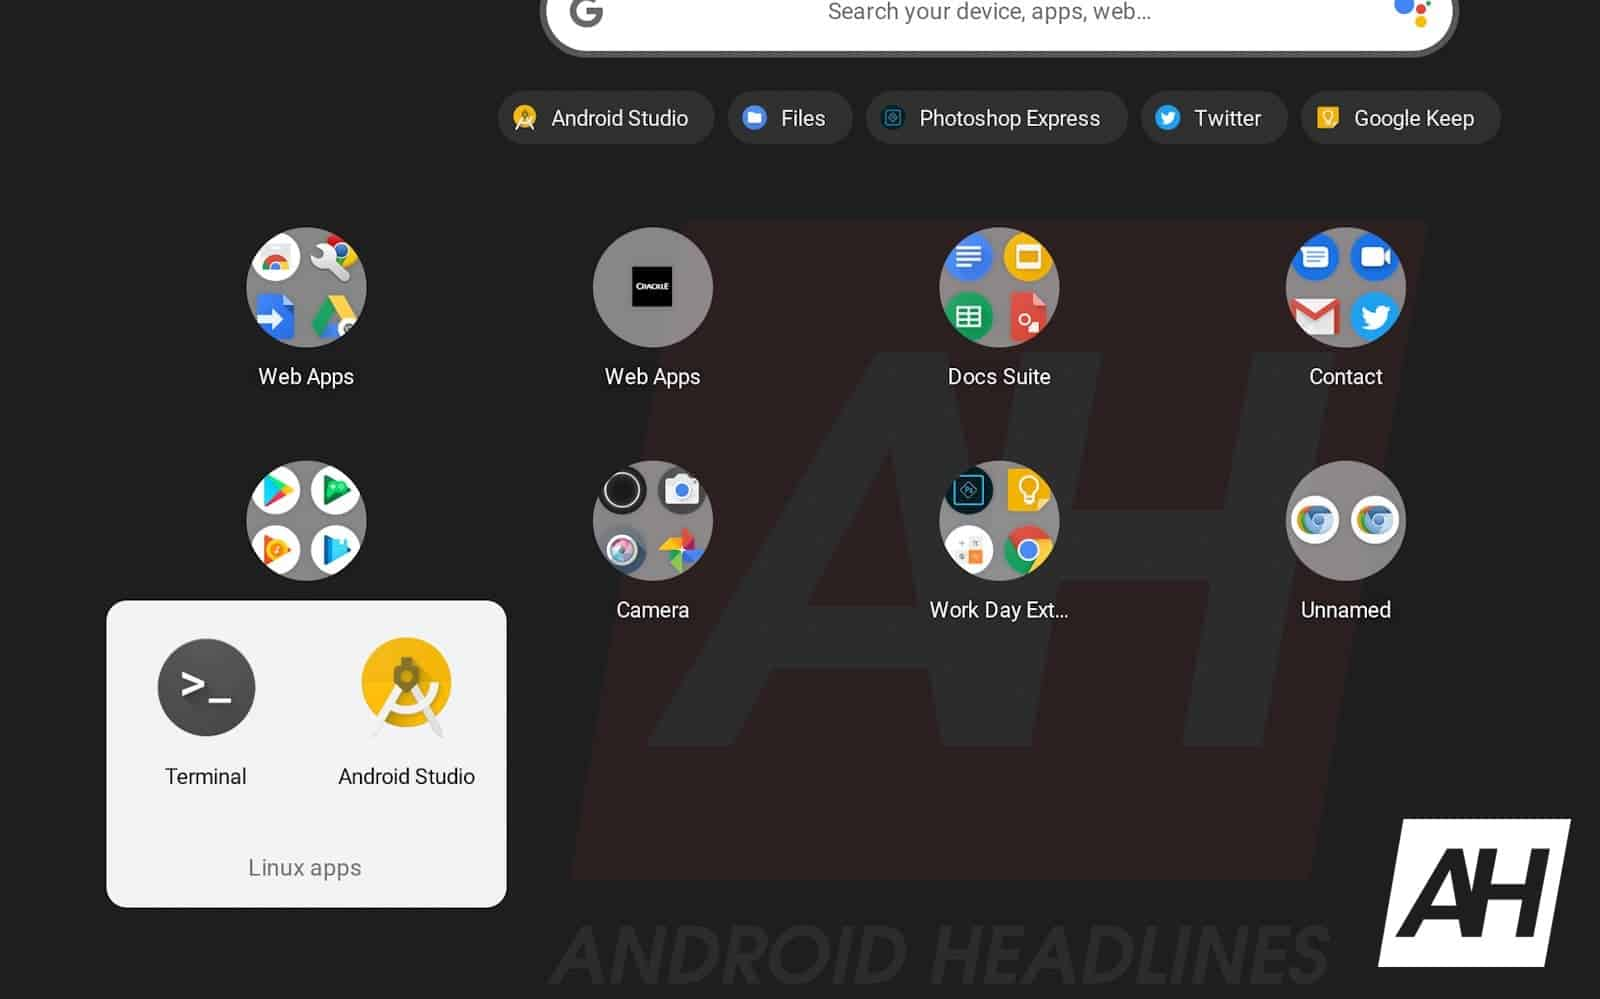 15 How to install Android Studio Chrome OS AH 2019